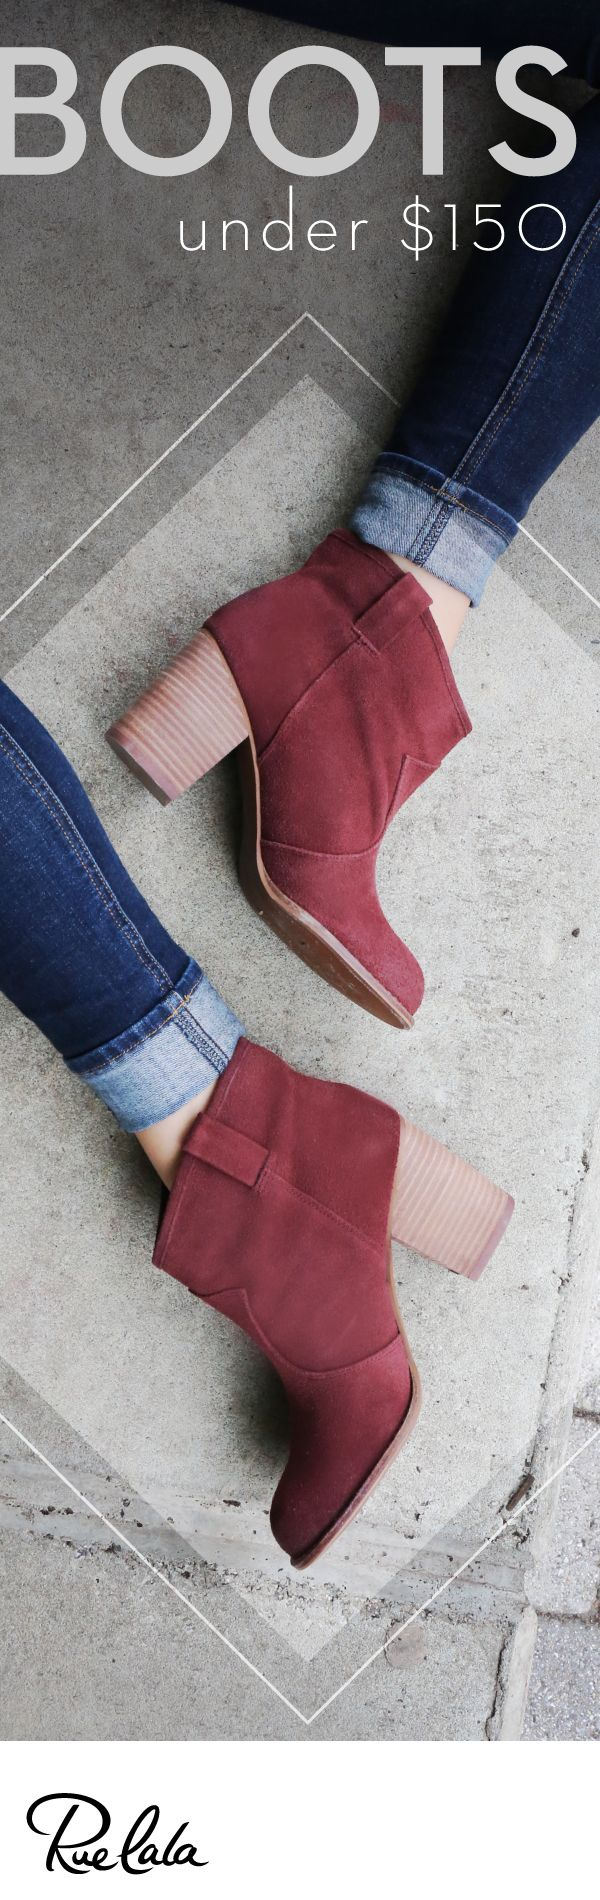 Shop must-have boots from Donald J Pliner, Seychelles, and more. All under $150. Join Rue La La today for free and get started.